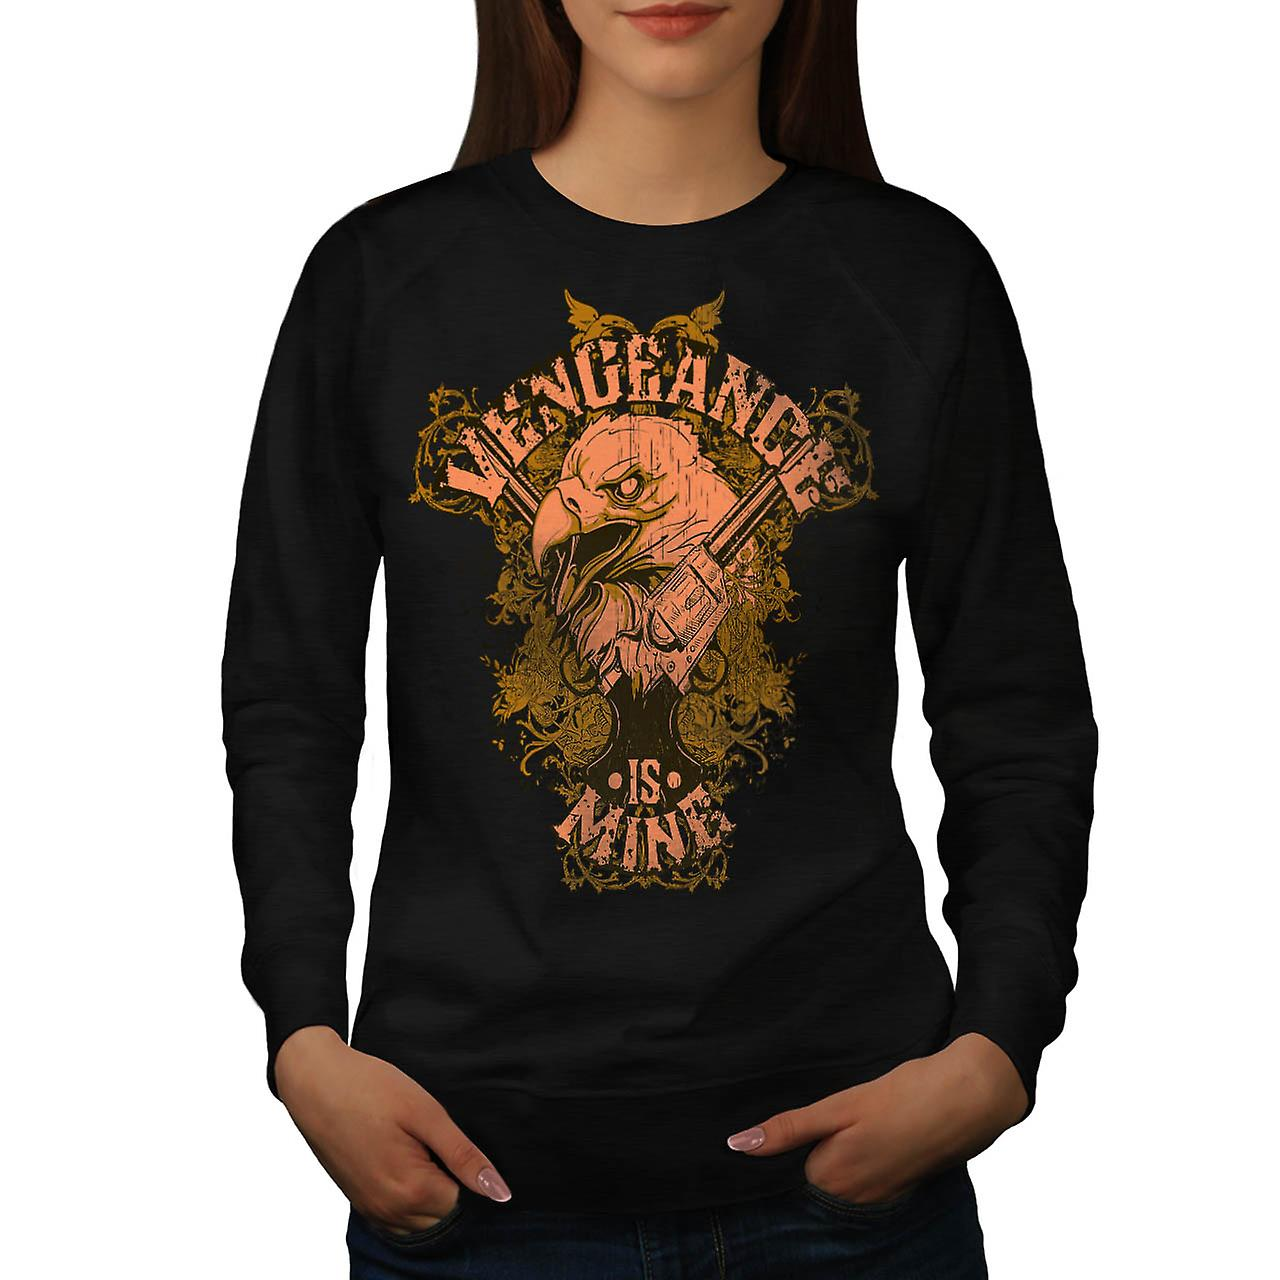 Vengeance Is Mine Vintage Women Black Sweatshirt | Wellcoda